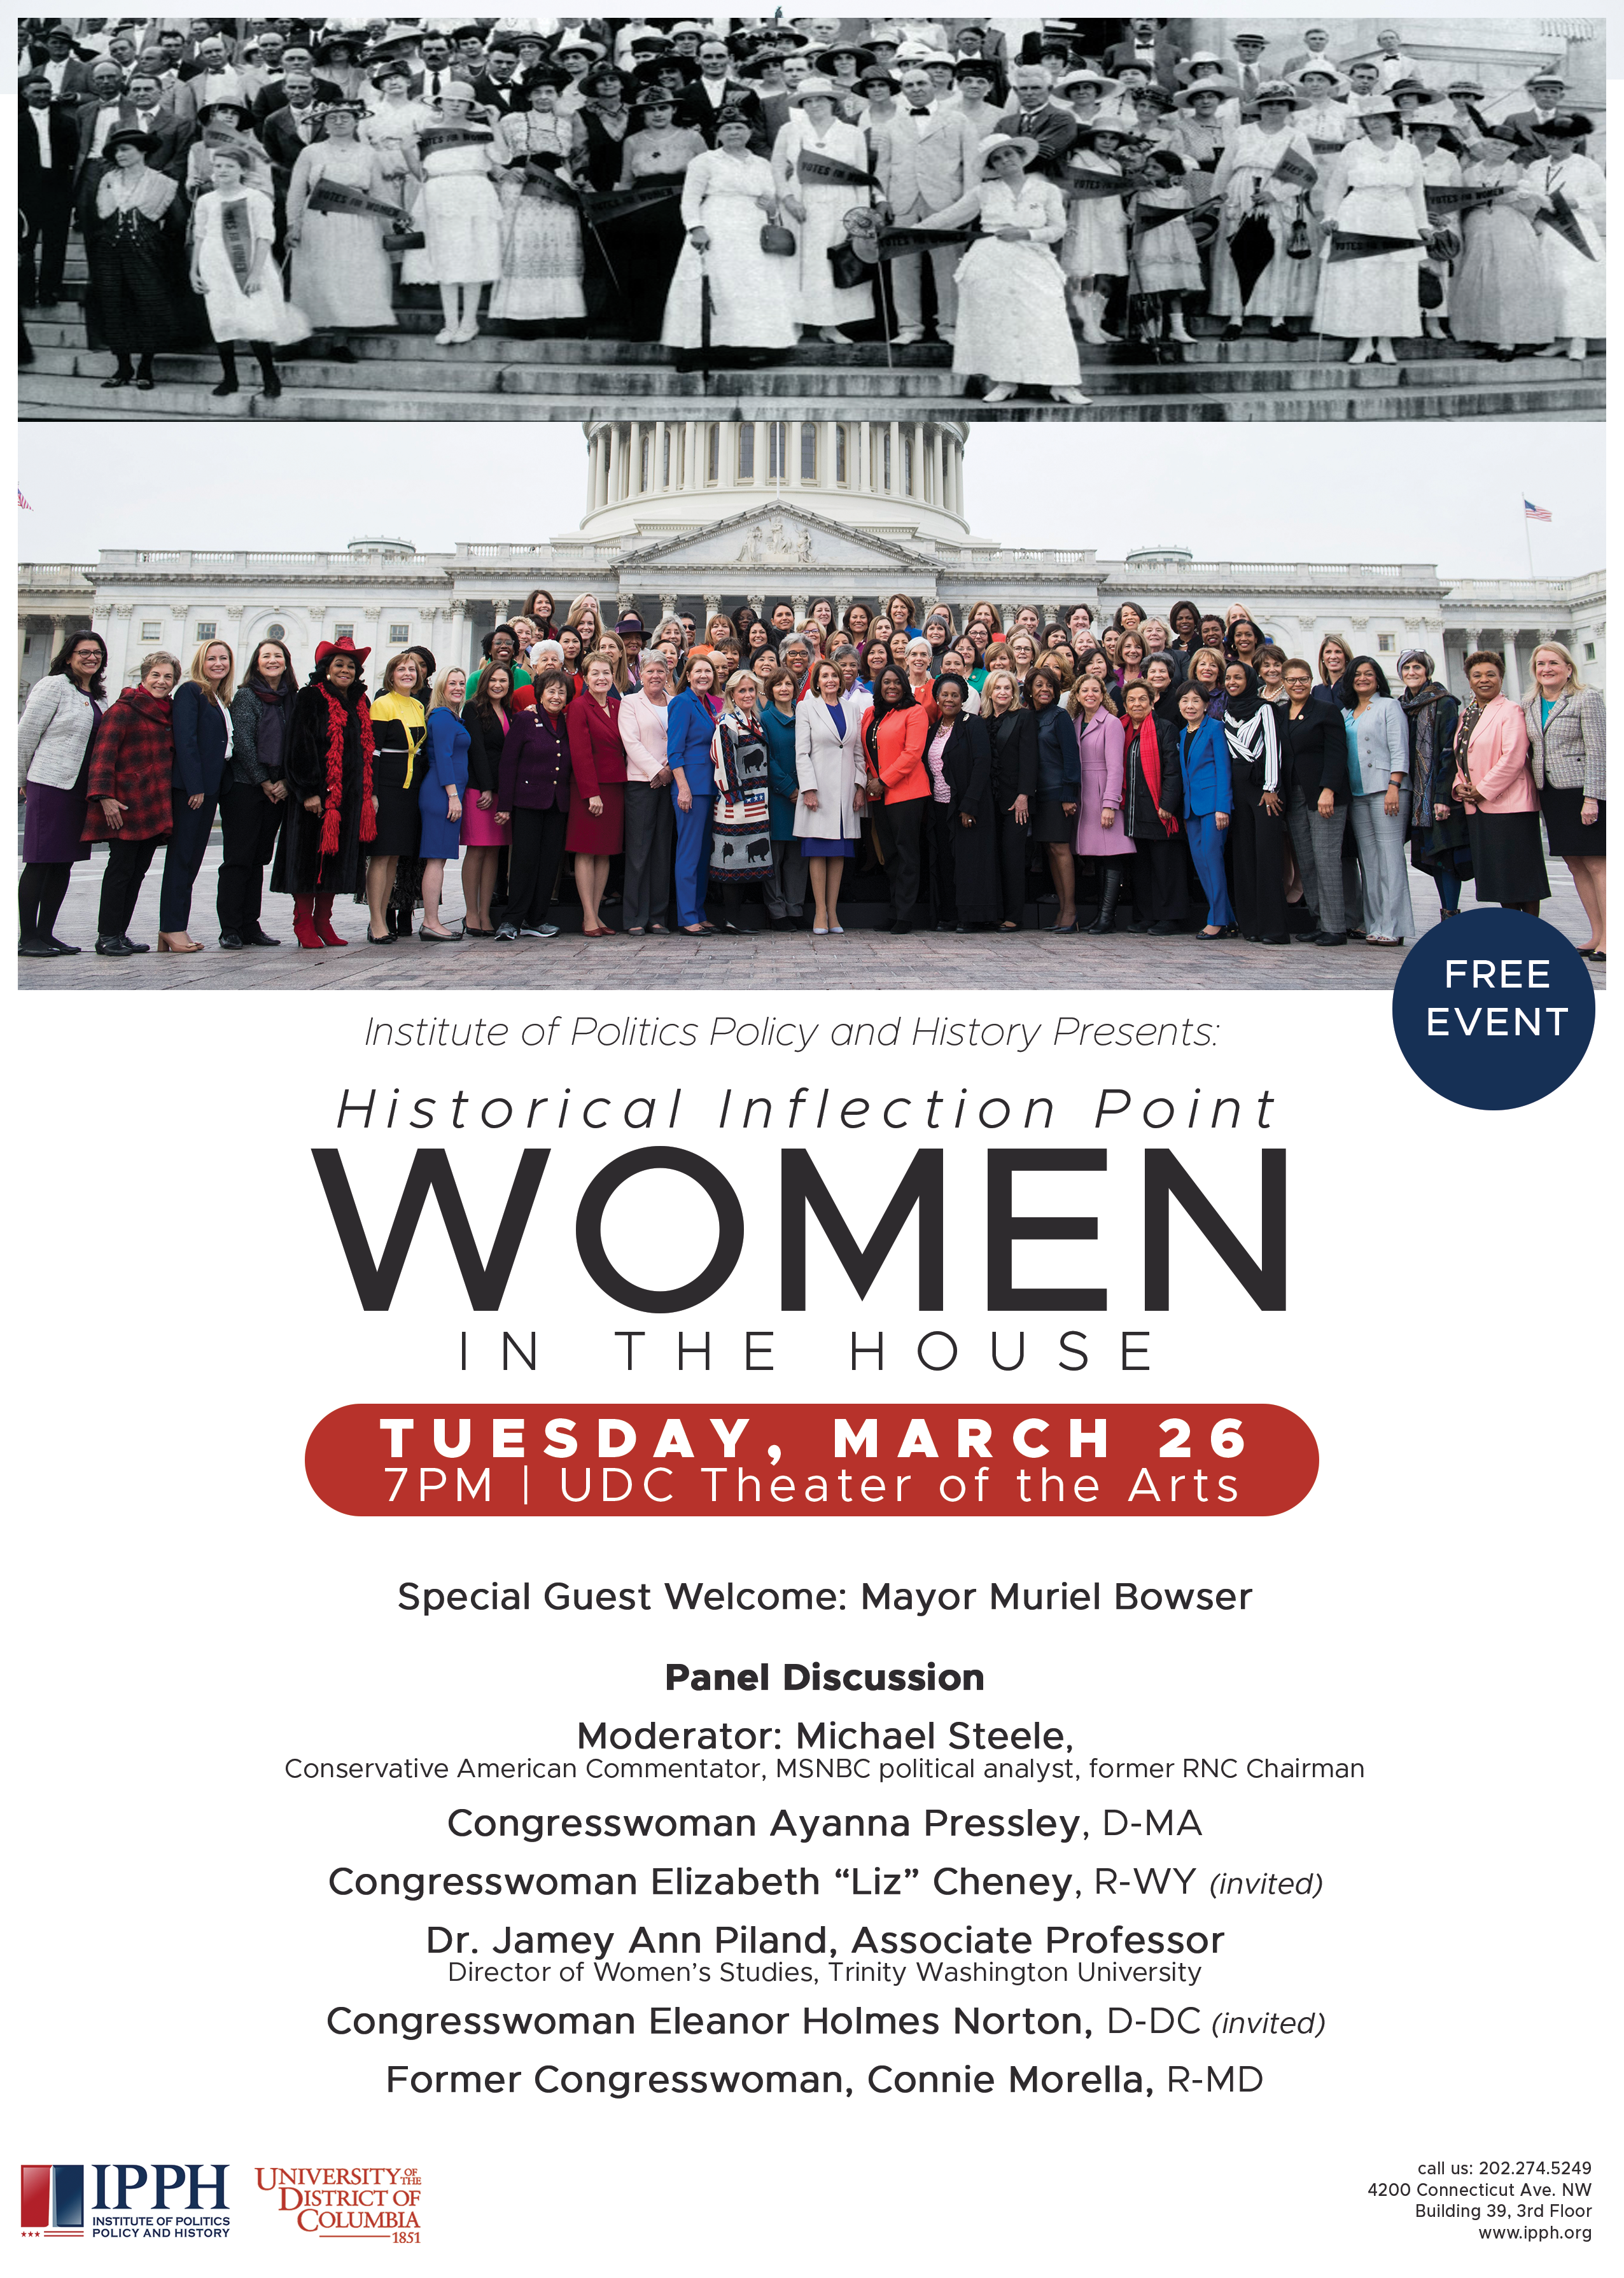 Historical Inflection Point: Women in the House - March 26, 2019 @ 7pm